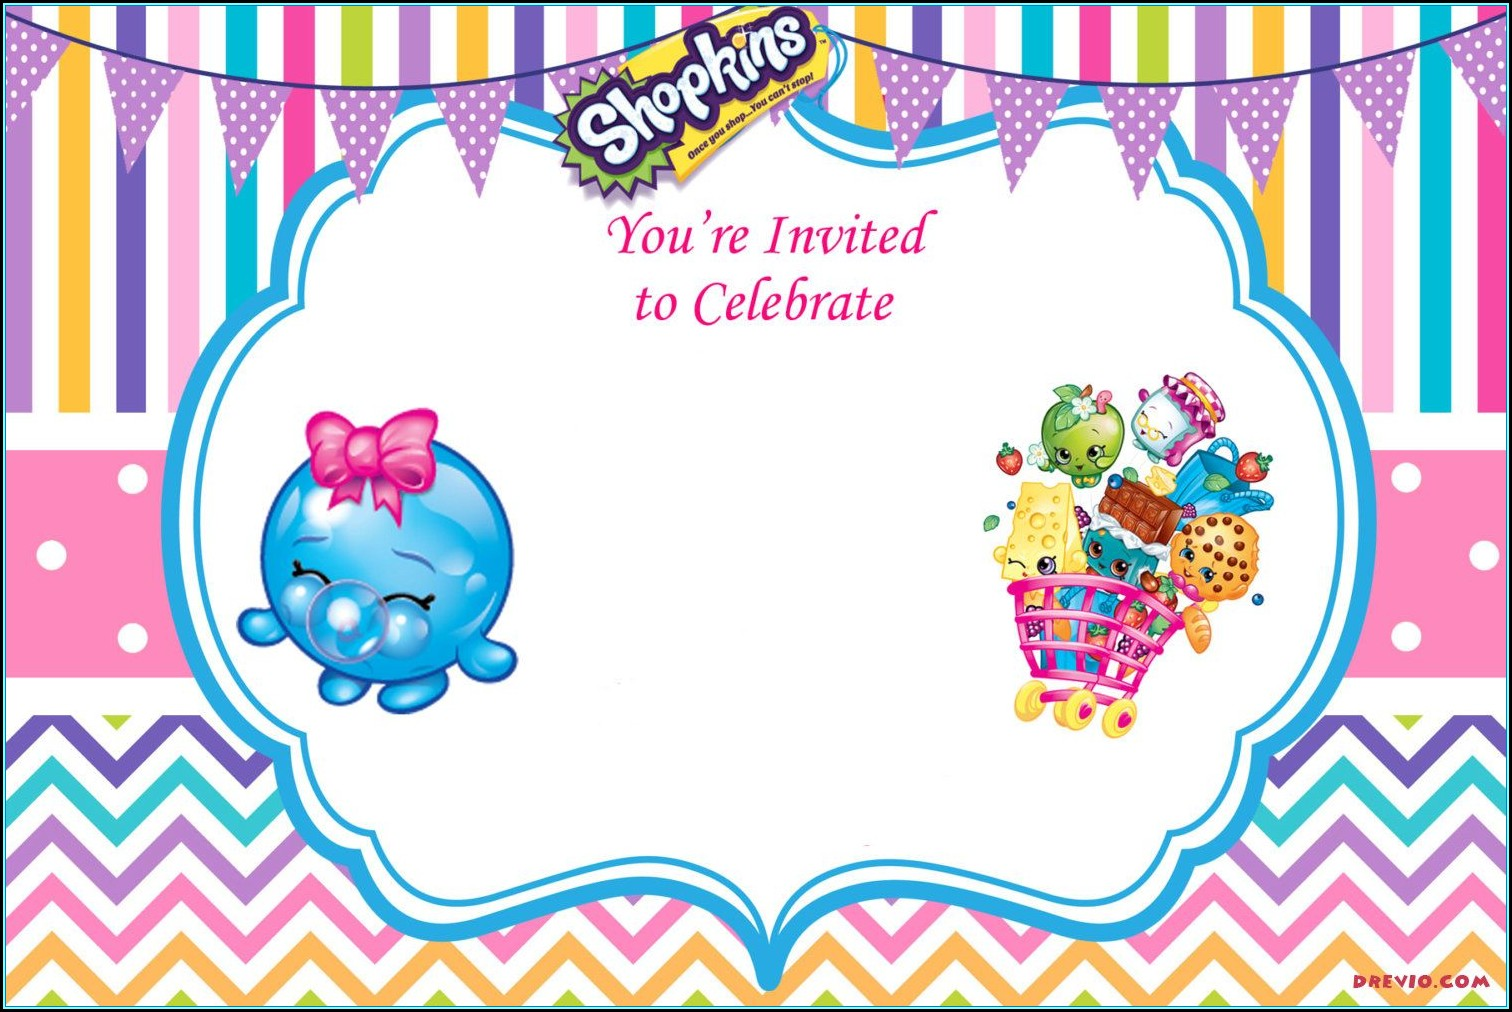 Shopkins Online Invitation Template